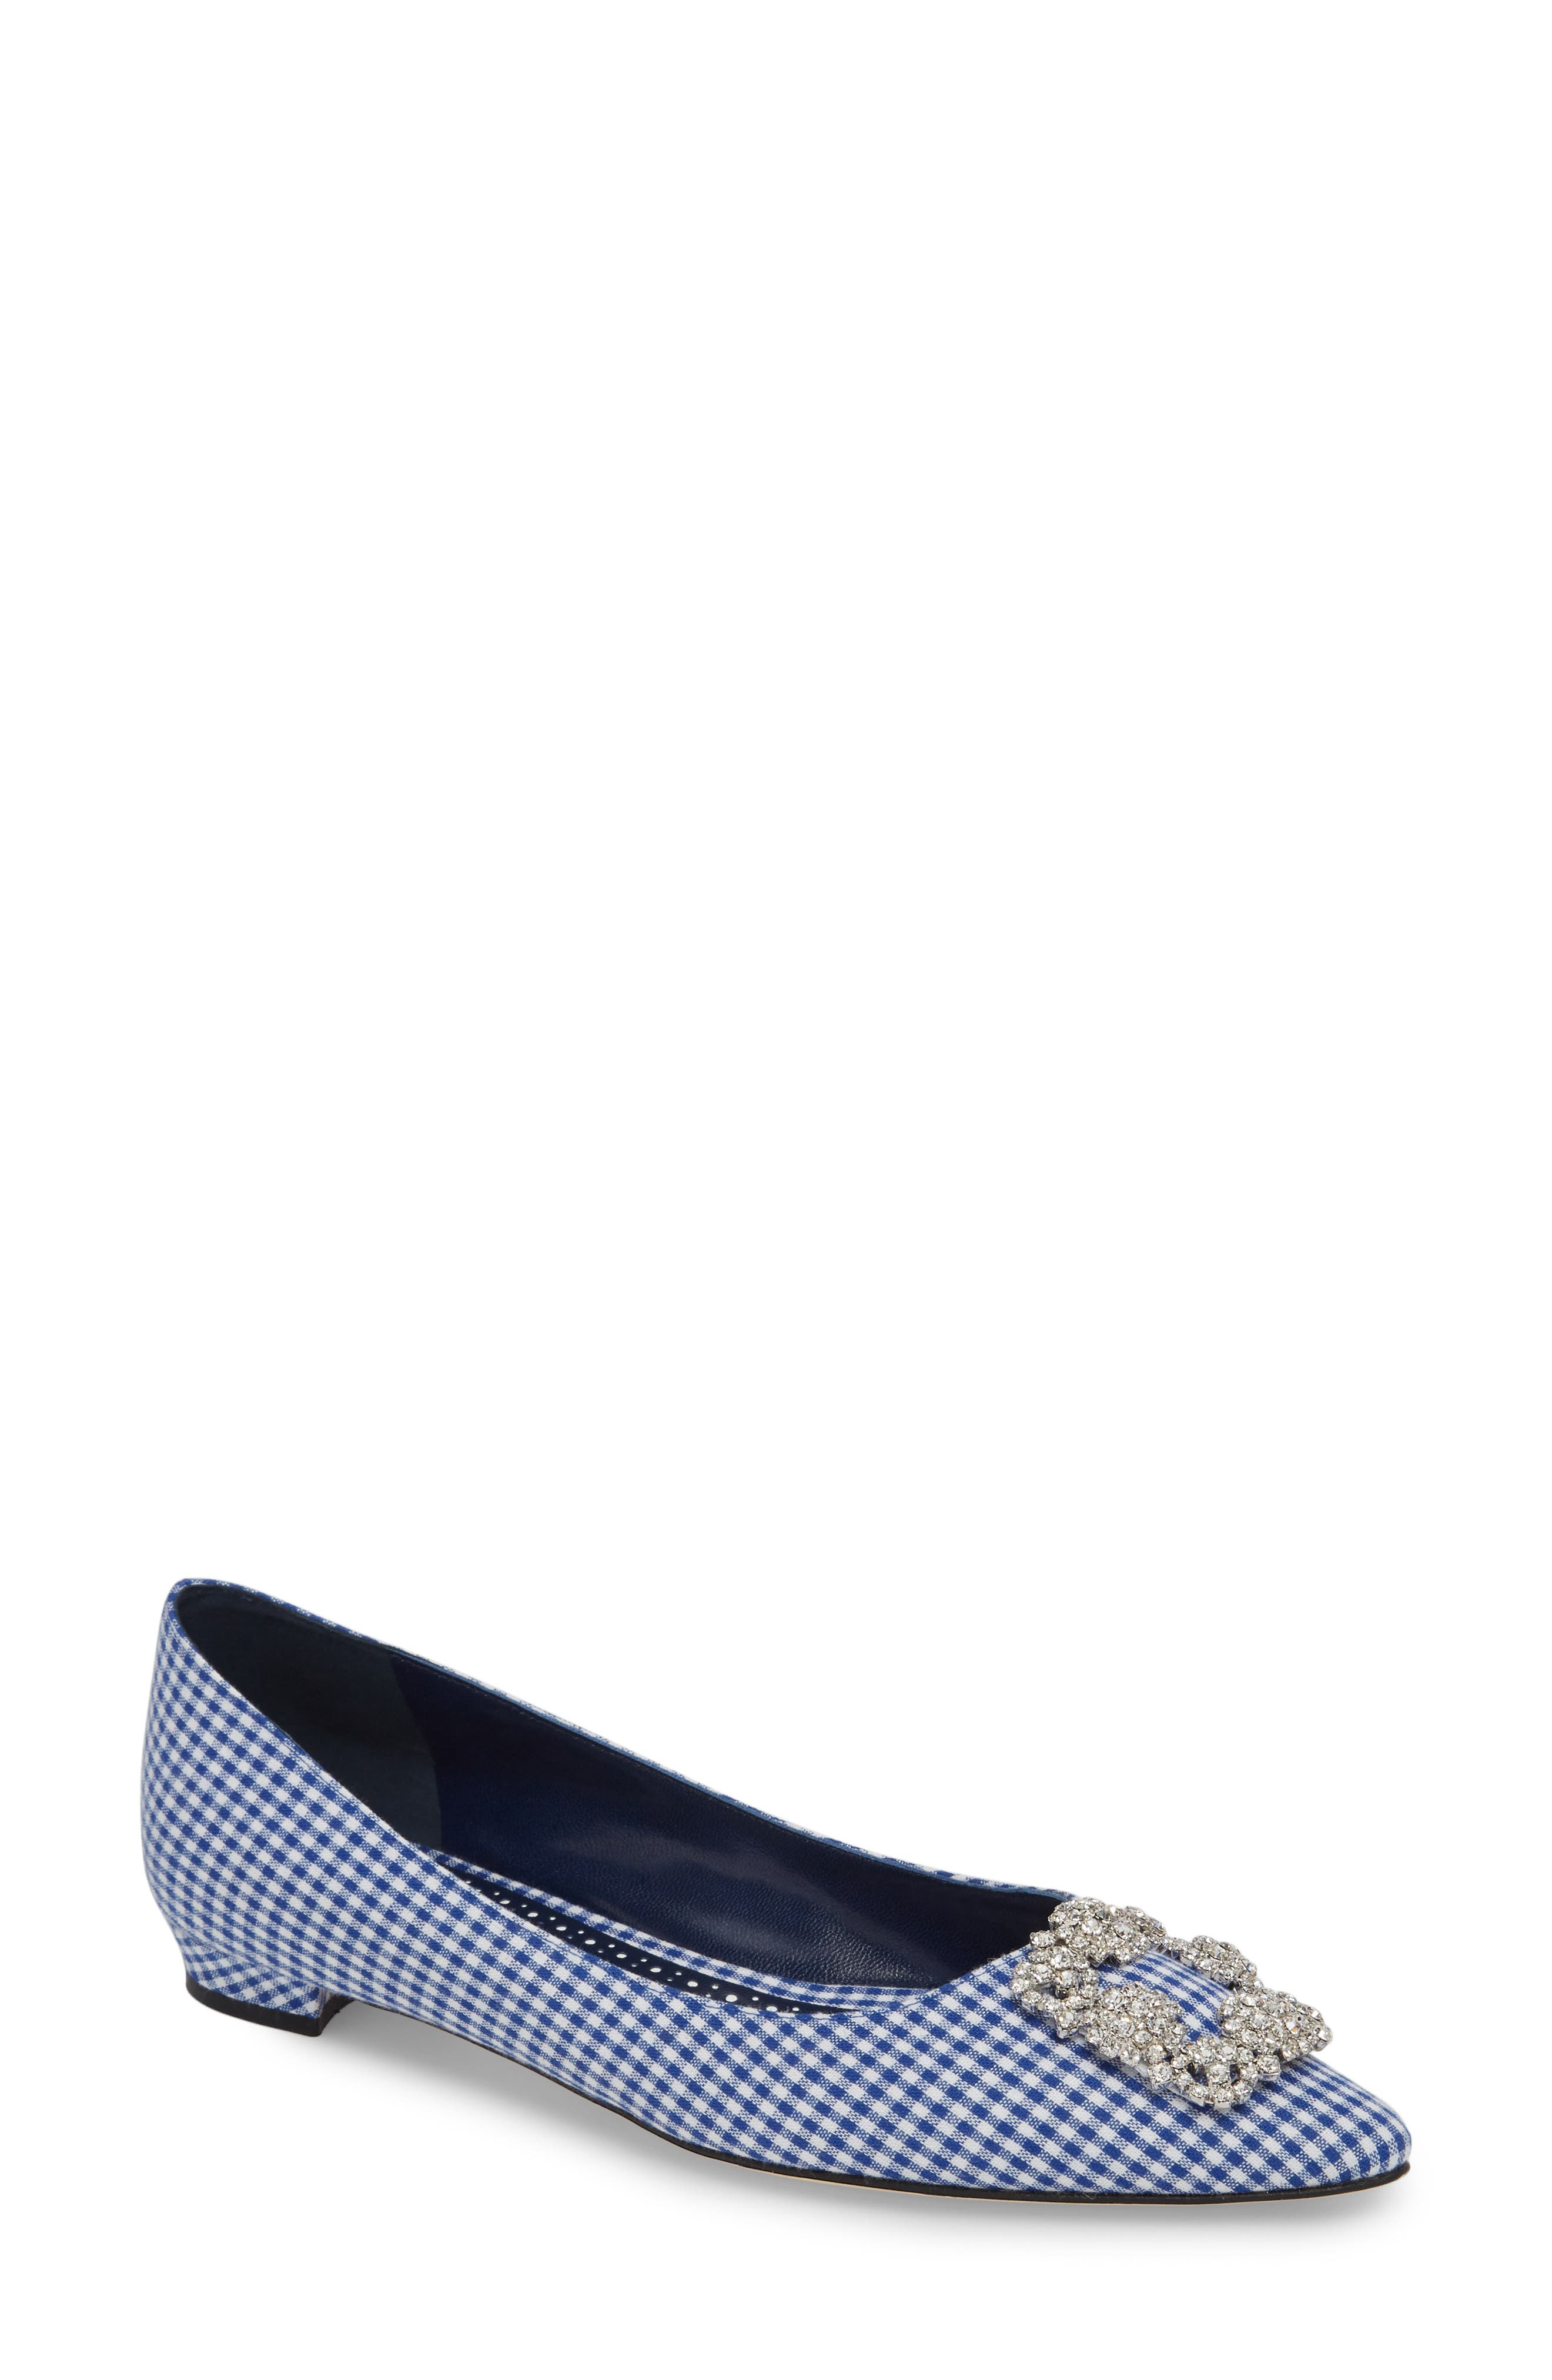 'Hangisi' Jeweled Pointy Toe Flat,                         Main,                         color, NAVY GINGHAM